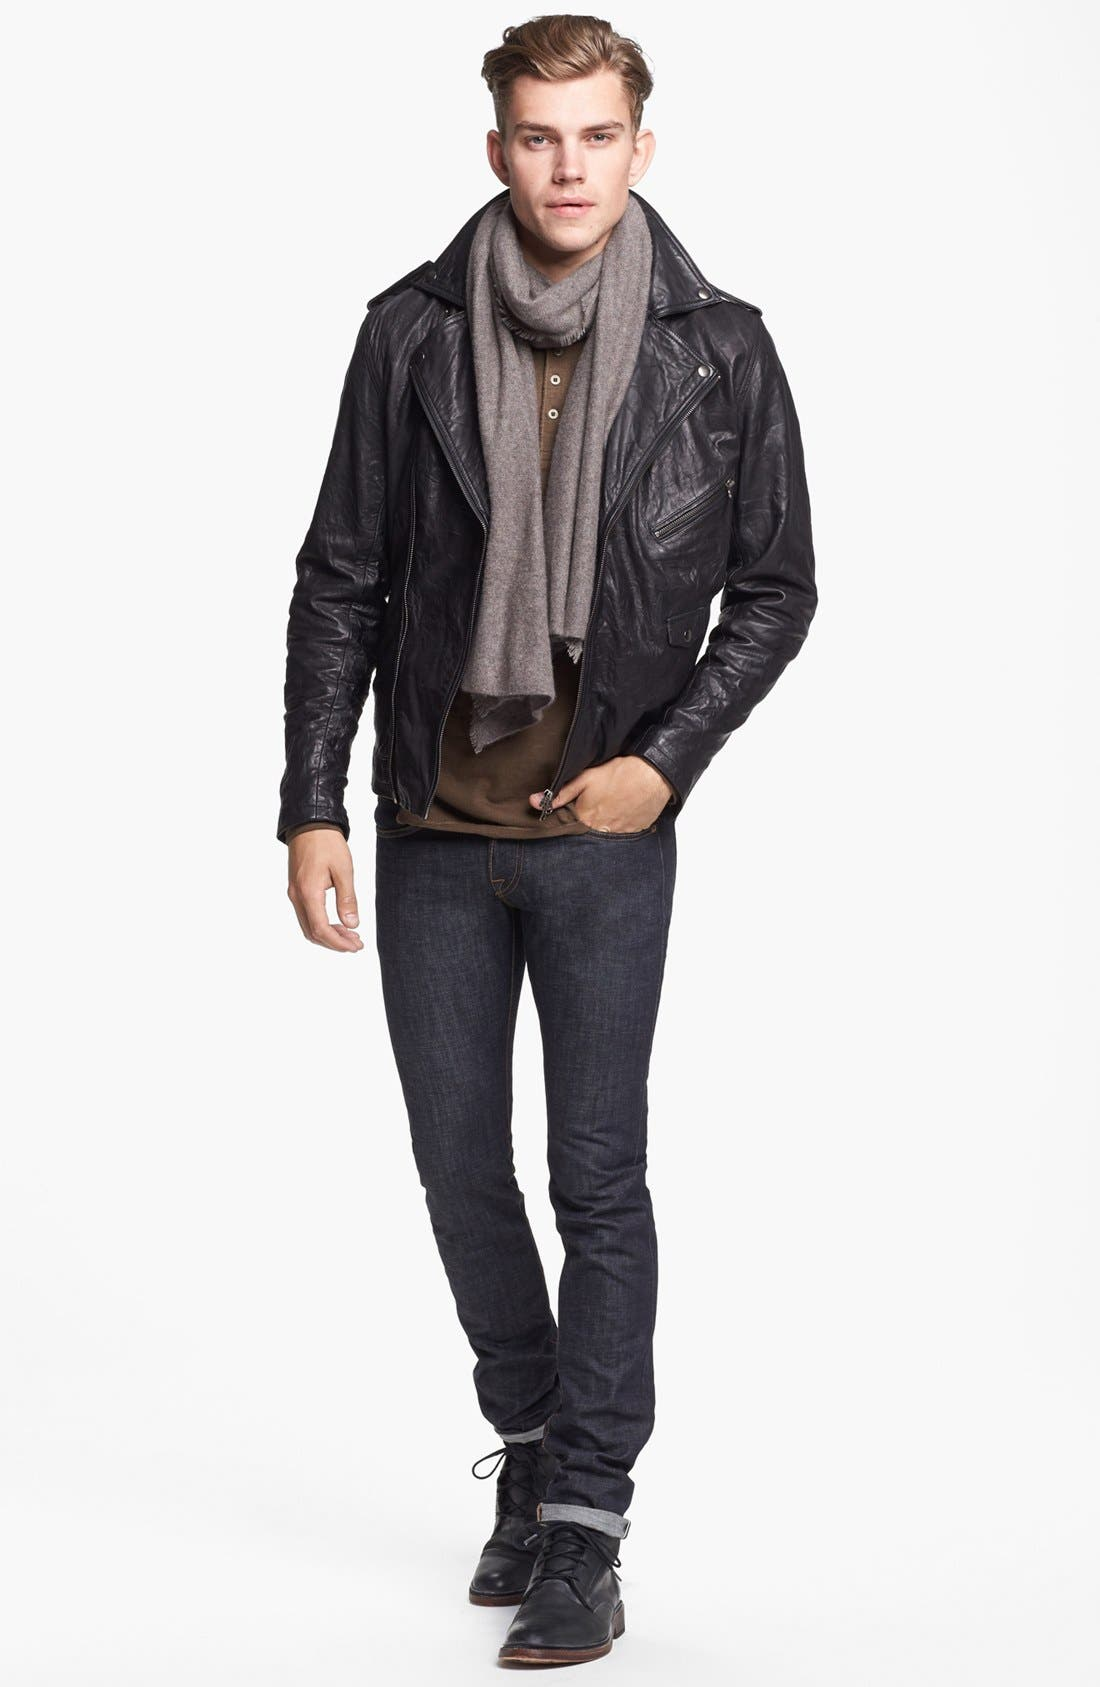 ZANEROBE Leather Biker Jacket, Polo Ralph Lauren Cashmere Blend Scarf & J Brand Skinny Fit Jeans,                             Alternate thumbnail 2, color,                             001